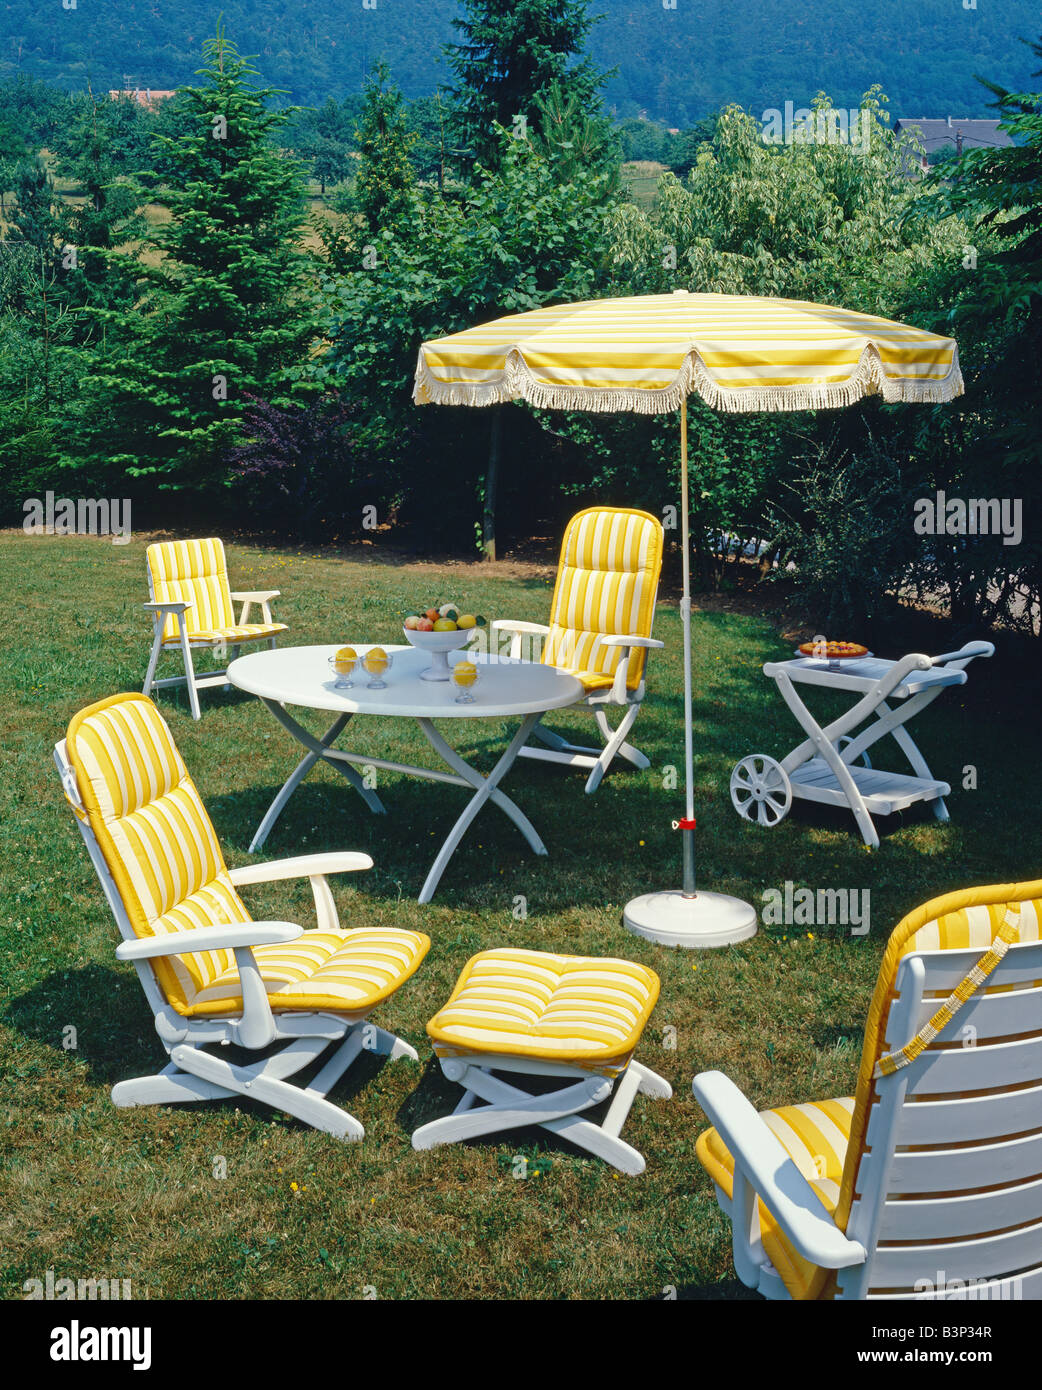 GARDEN FURNITURE CHAIR ARMCHAIRS AND PARASOL DECORATED WITH YELLOW STRIPED  FABRIC